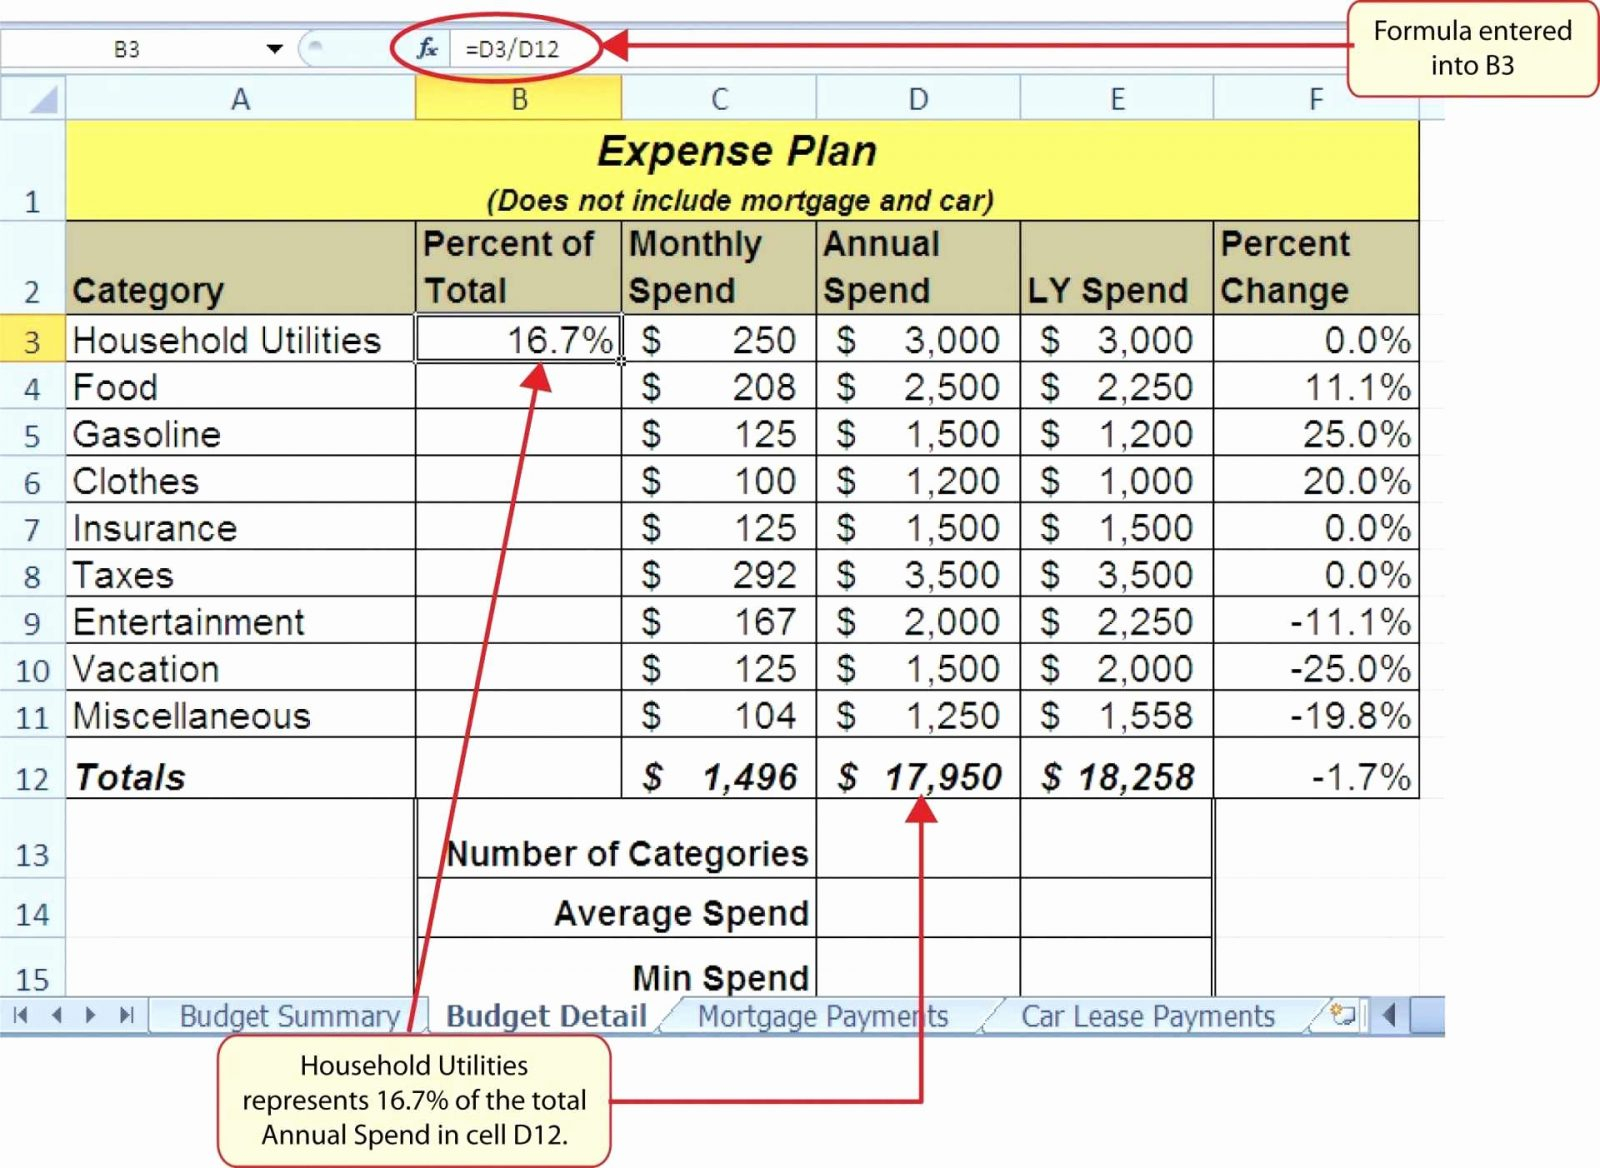 Amortization Spreadsheet With Extra Payments Google Sheets Throughout Example Of Mortgage Amortization Calculator Spreadsheet Auto Loan